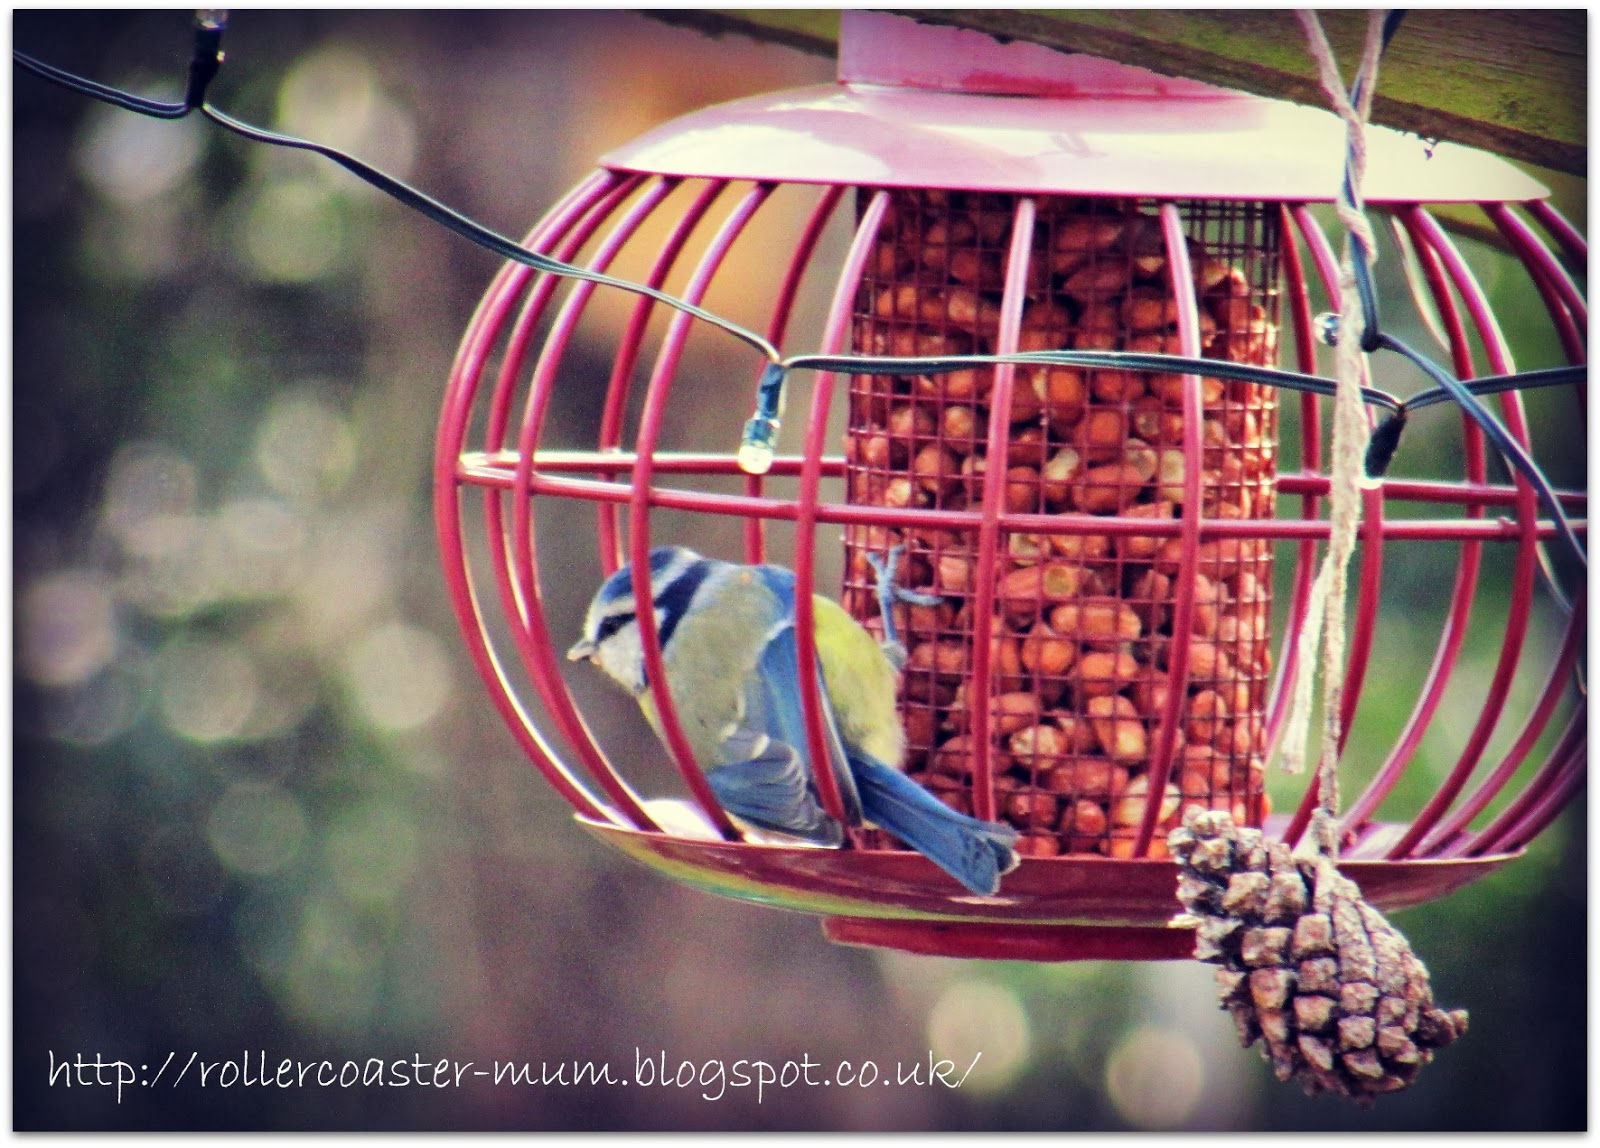 Feeding the birds - Blue Tit